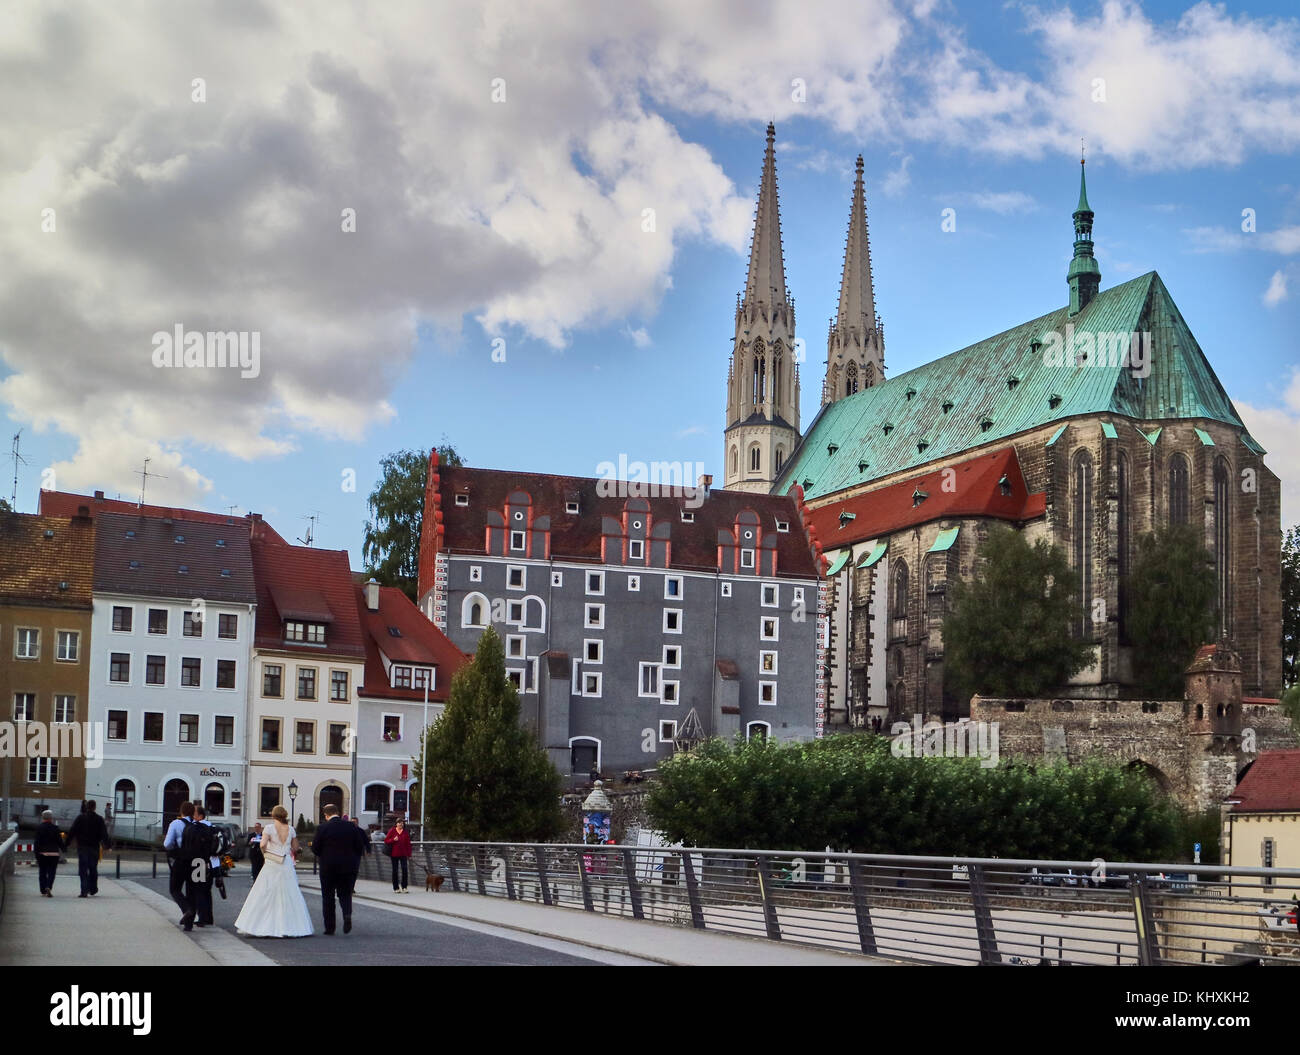 Europe, Germany, Saxony, Görlitz, The old town, , The 15th century st. Peter and Paul's, Protestant, church - Stock Image